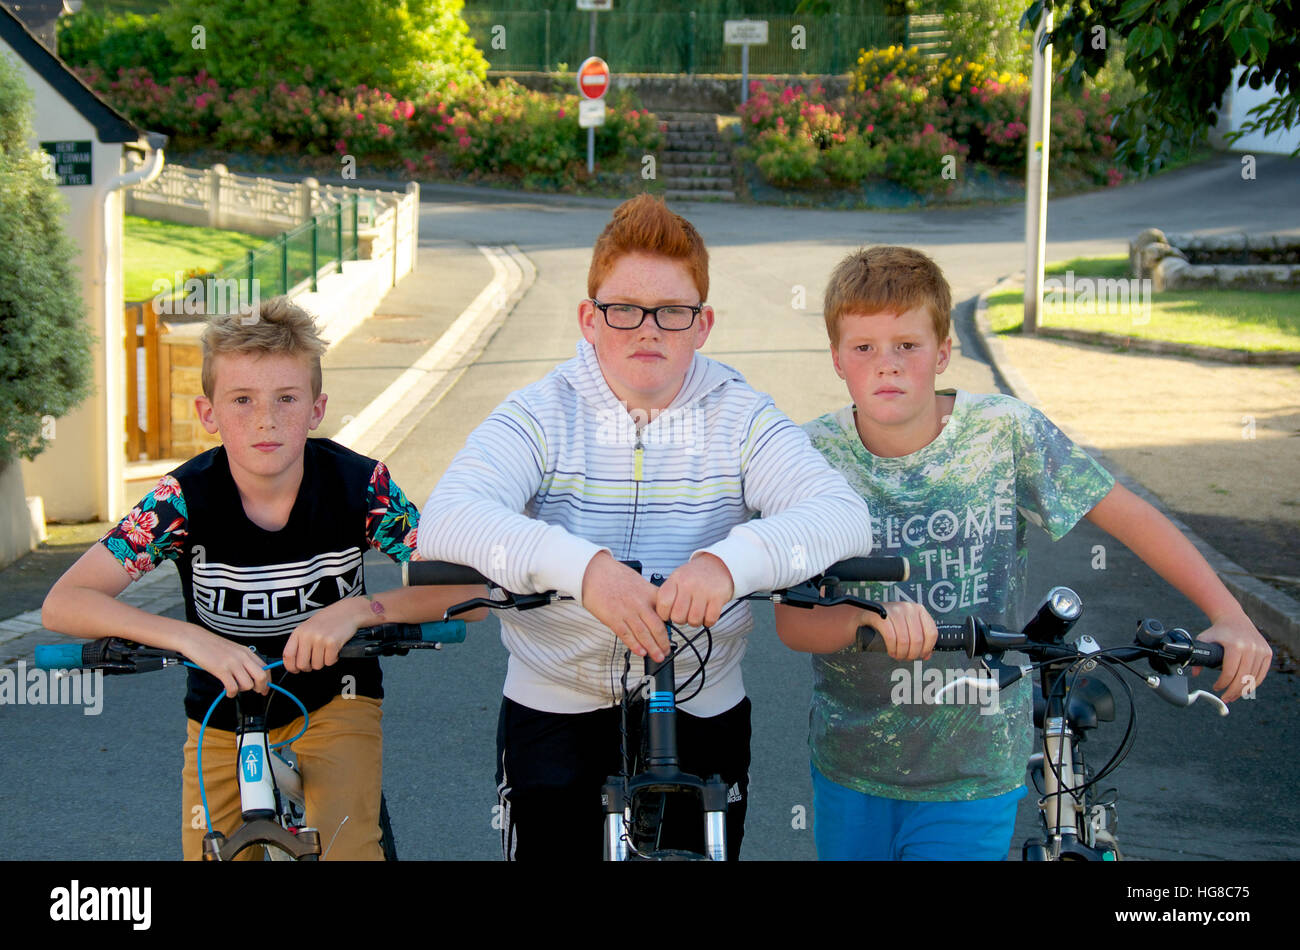 Gang of young boys on bicycles on a suburban street - Stock Image